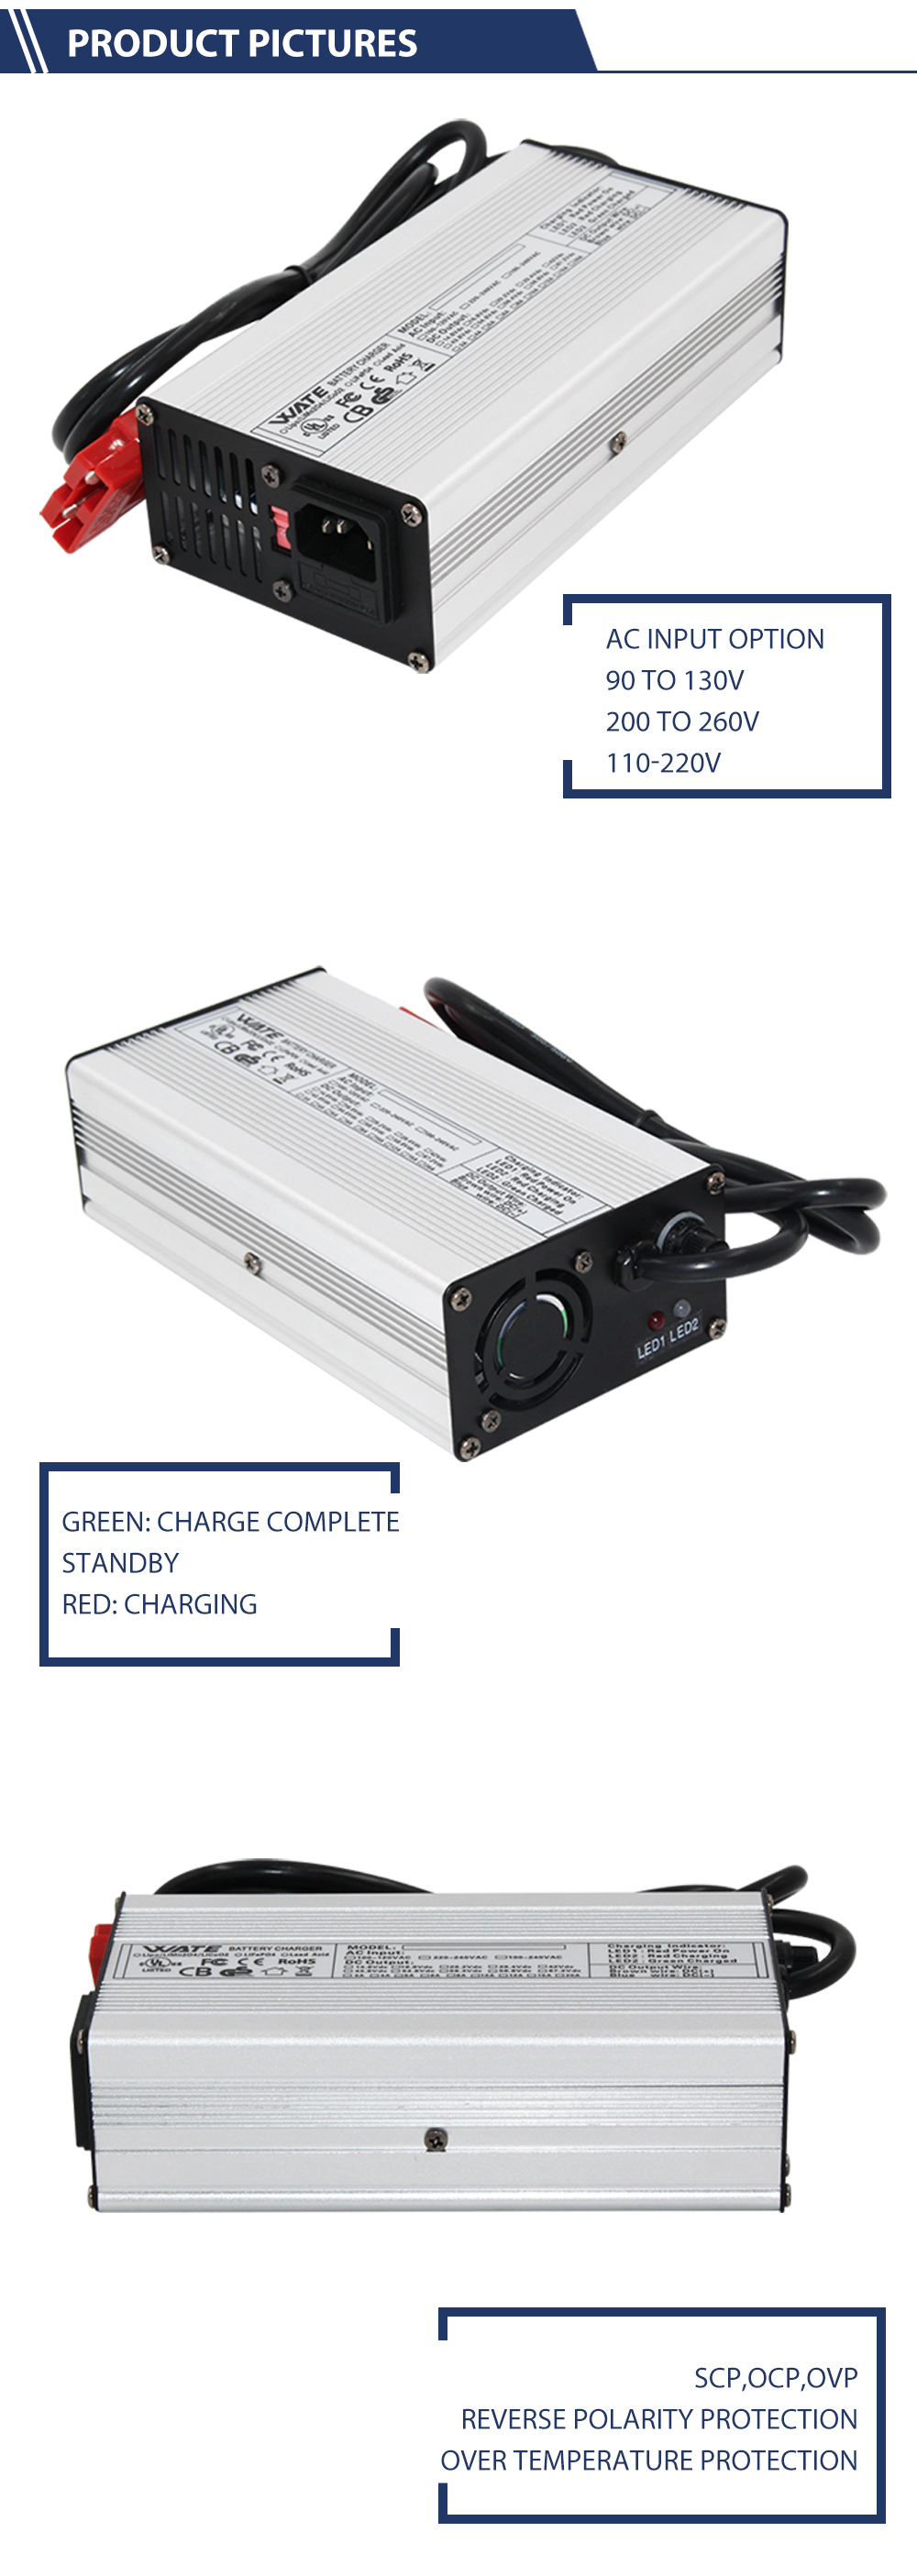 Battery Charger 24v 7a 6A Lead acid for Forklift Aluminium Alloy with Fan